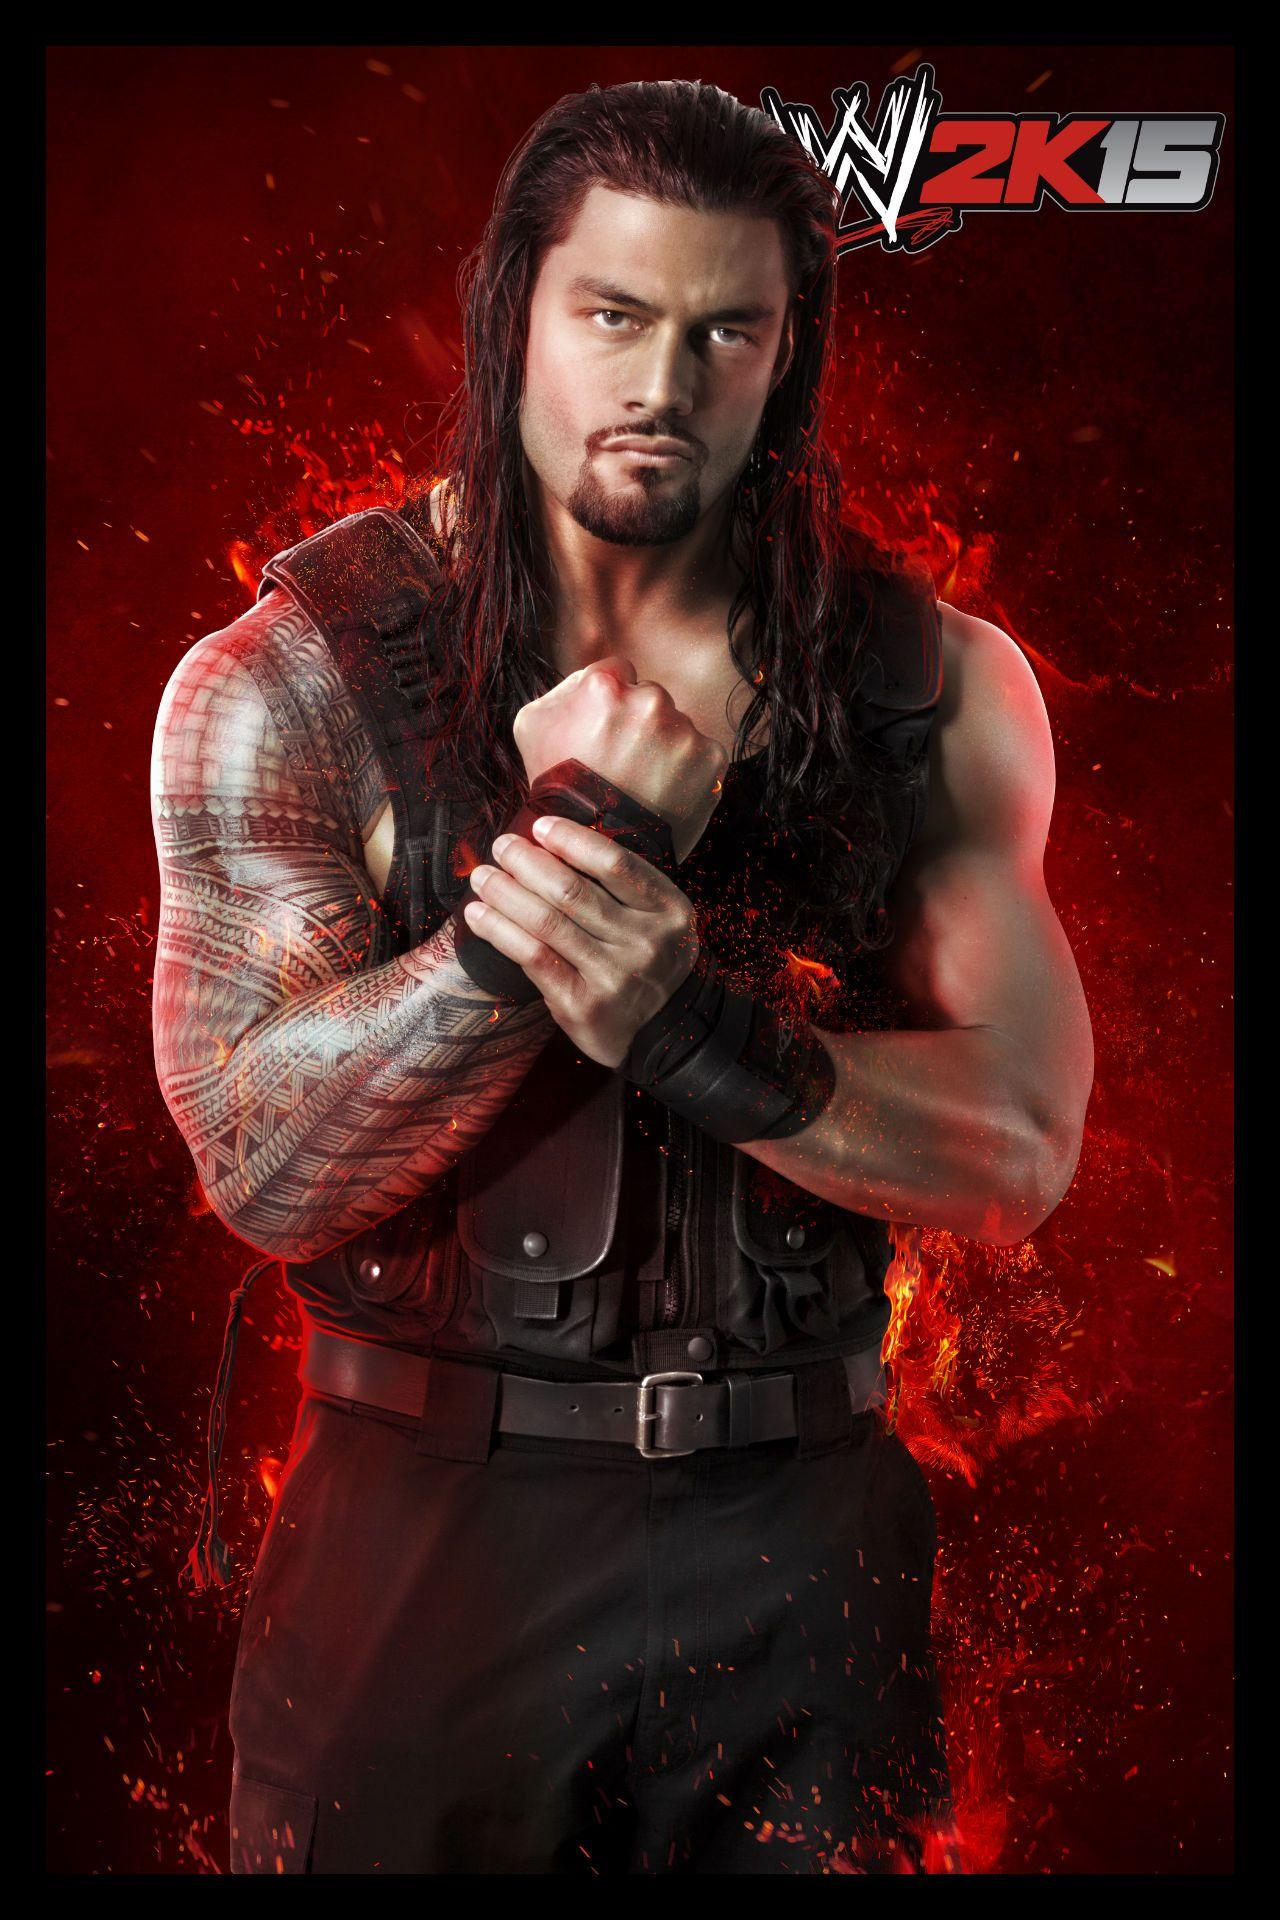 Roman Reigns image WWE 2K15 HD wallpapers and backgrounds photos